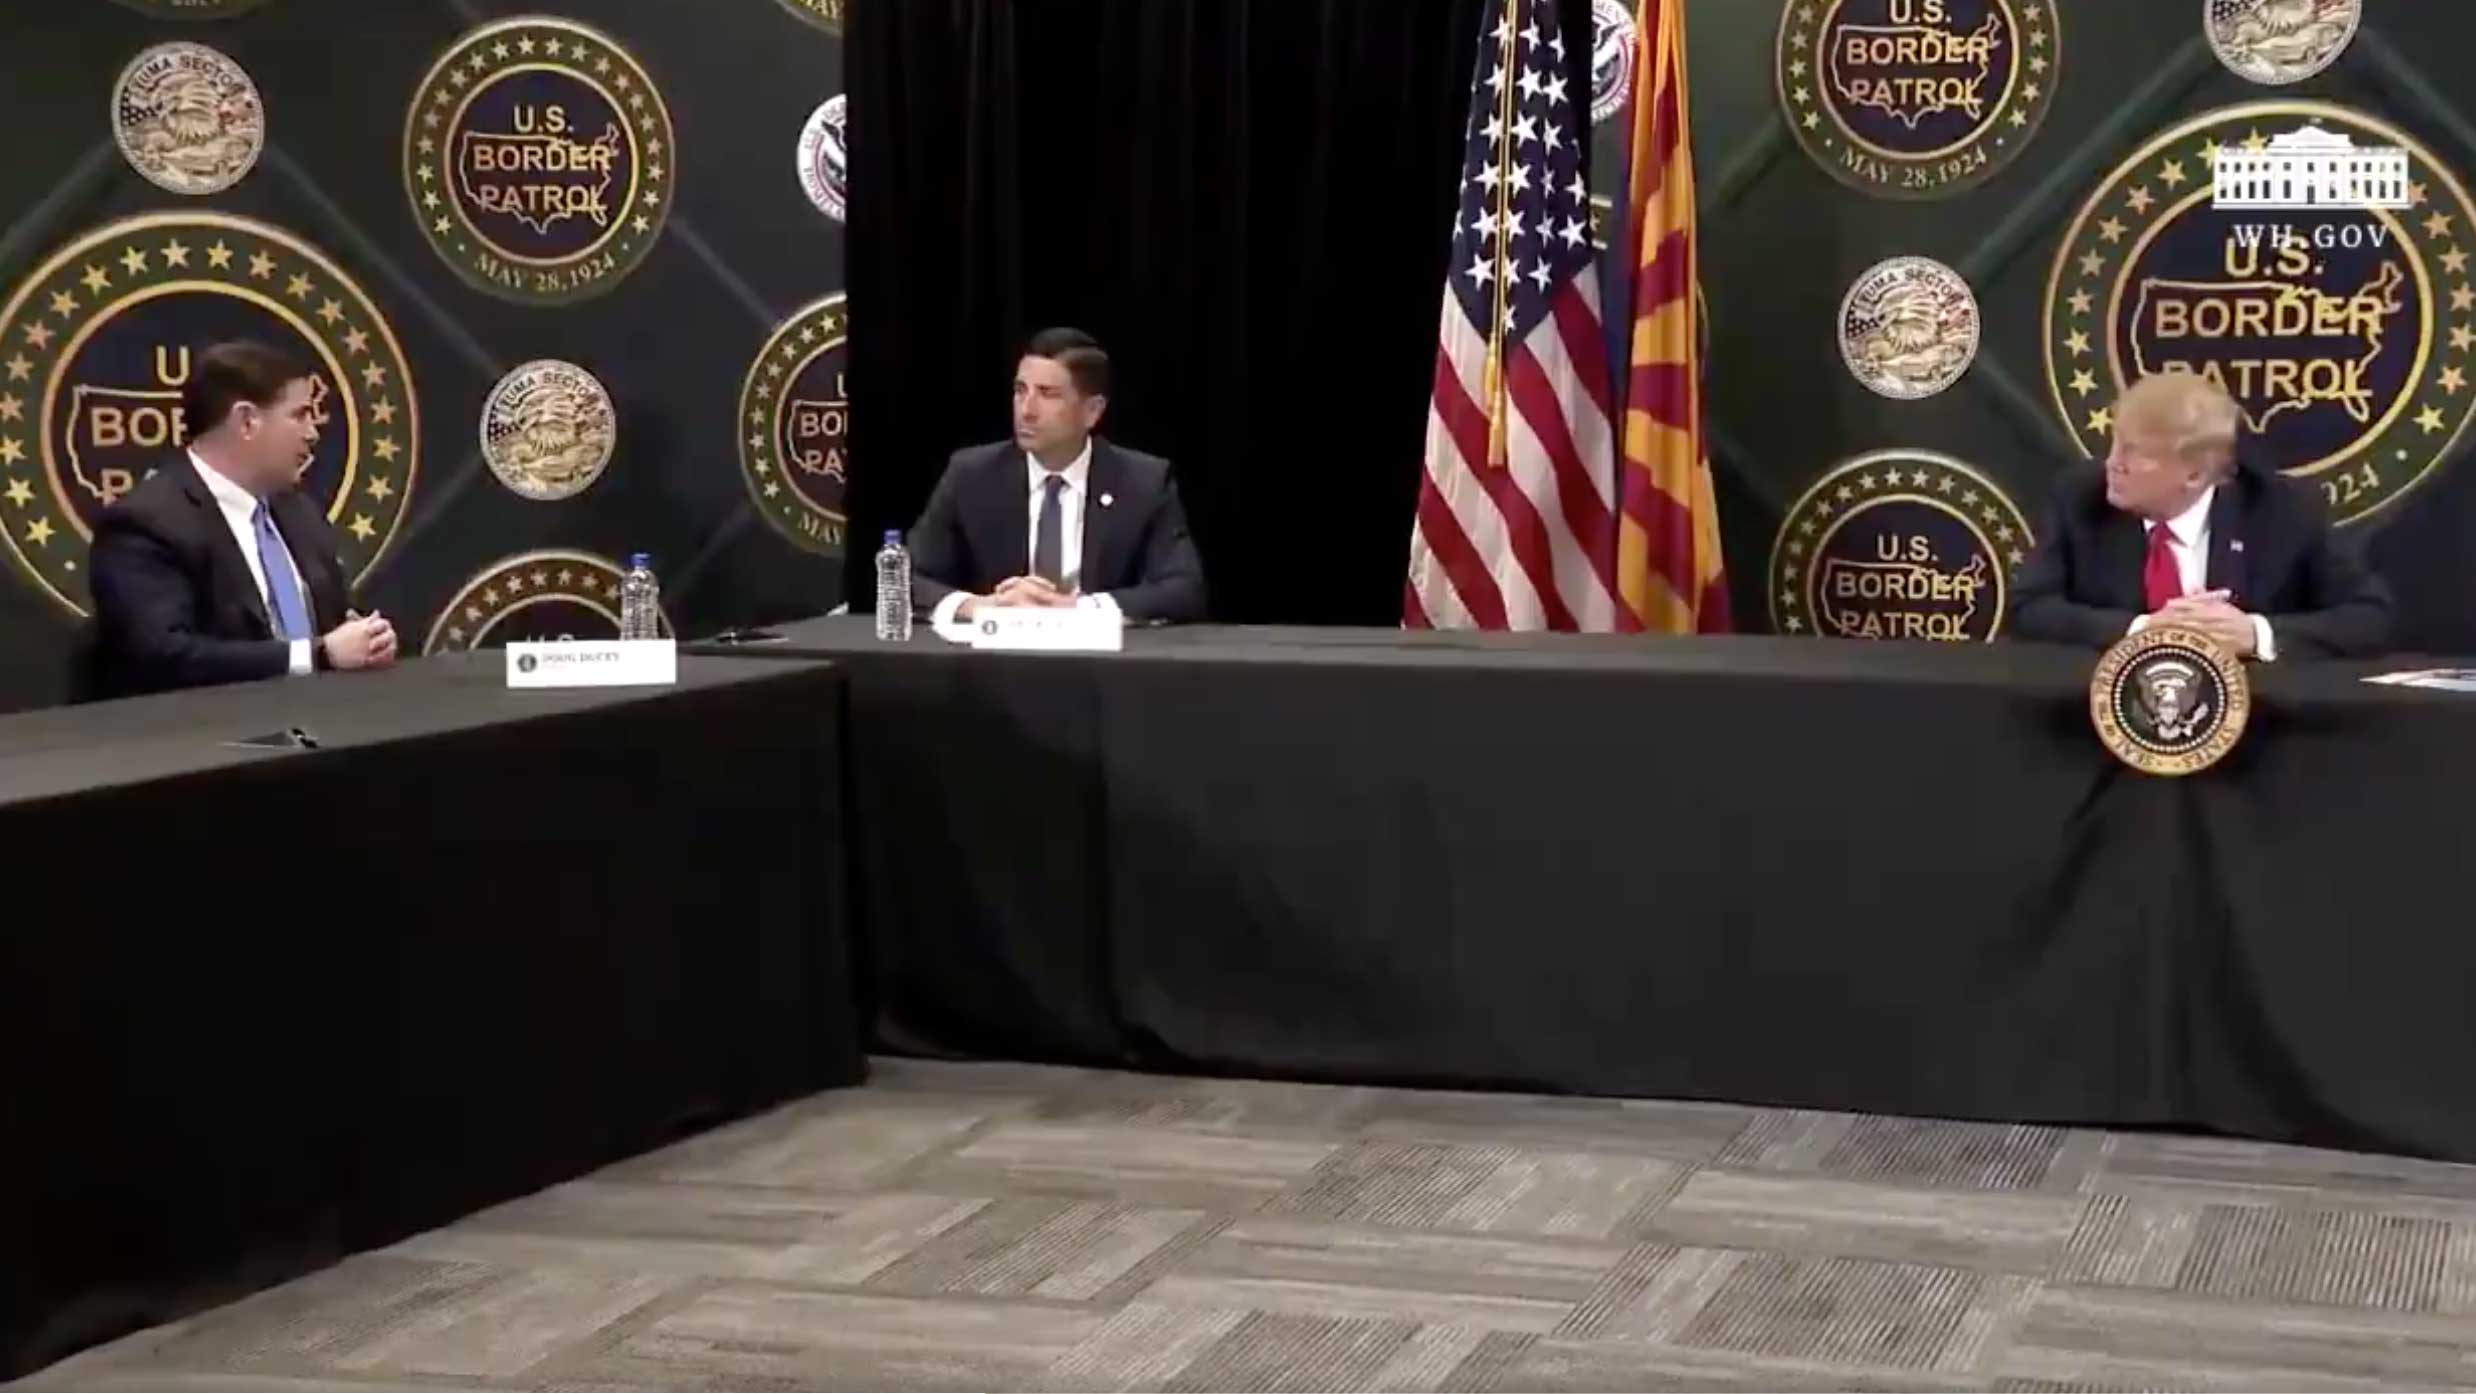 Arizona Gov. Doug Ducey speaks with President Trump on the president's visit to Arizona, June 23, 2020, in this still image from video posted on the Trump campaign social media.